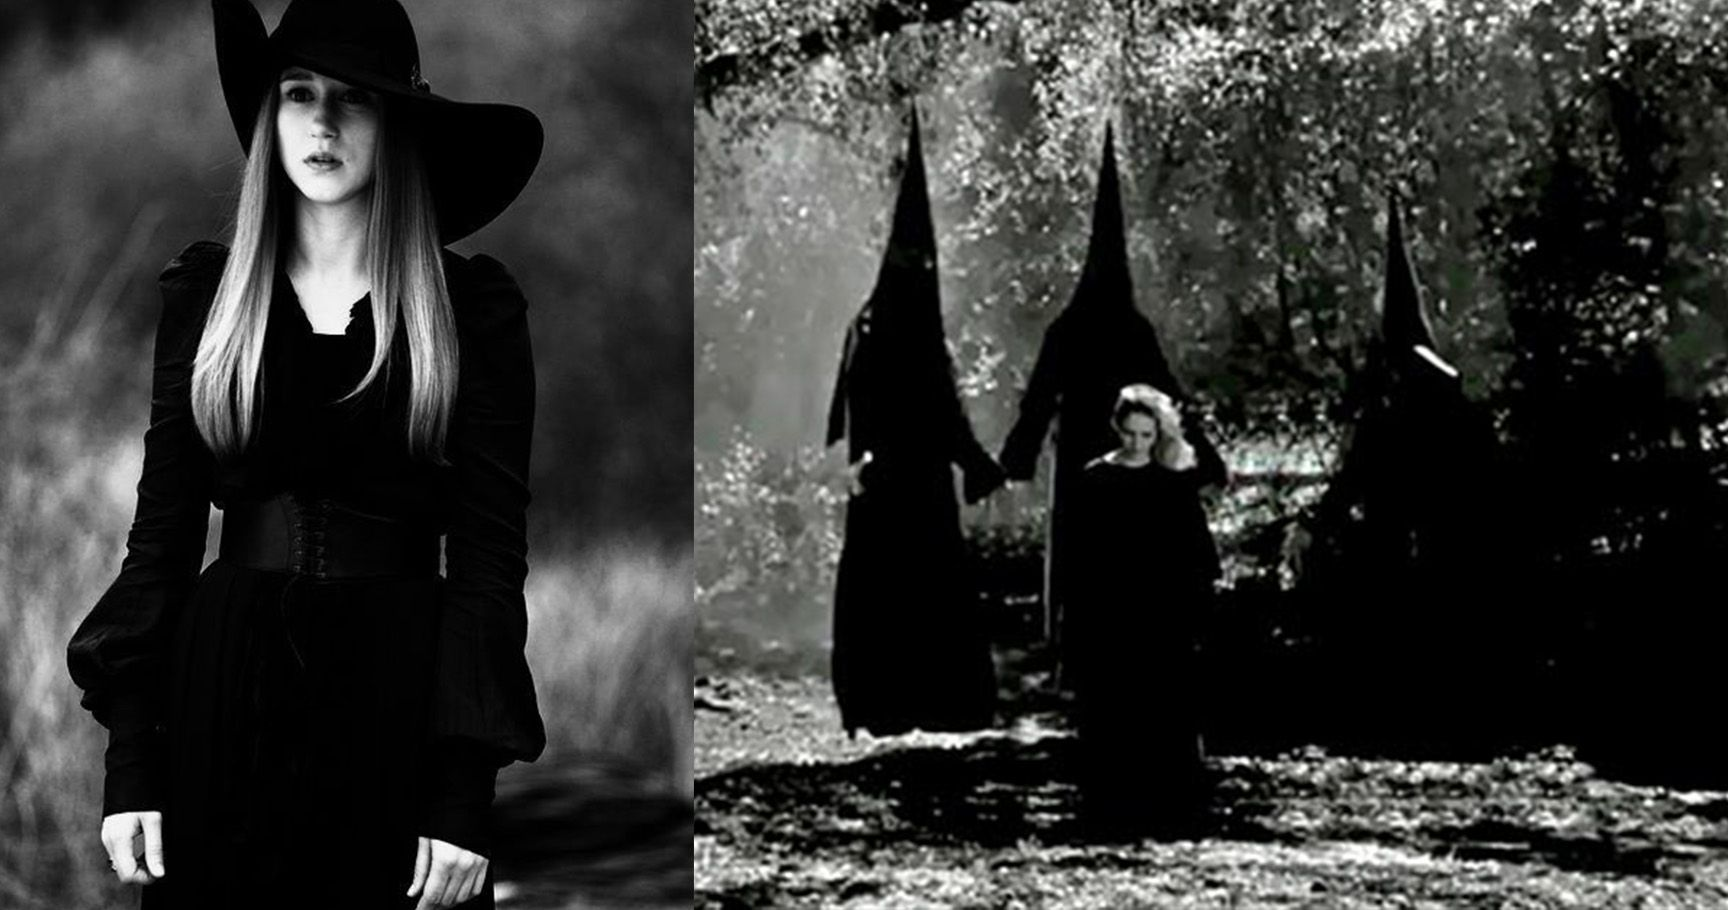 15 Dark Facts You Didn't Know About Witch Hunts